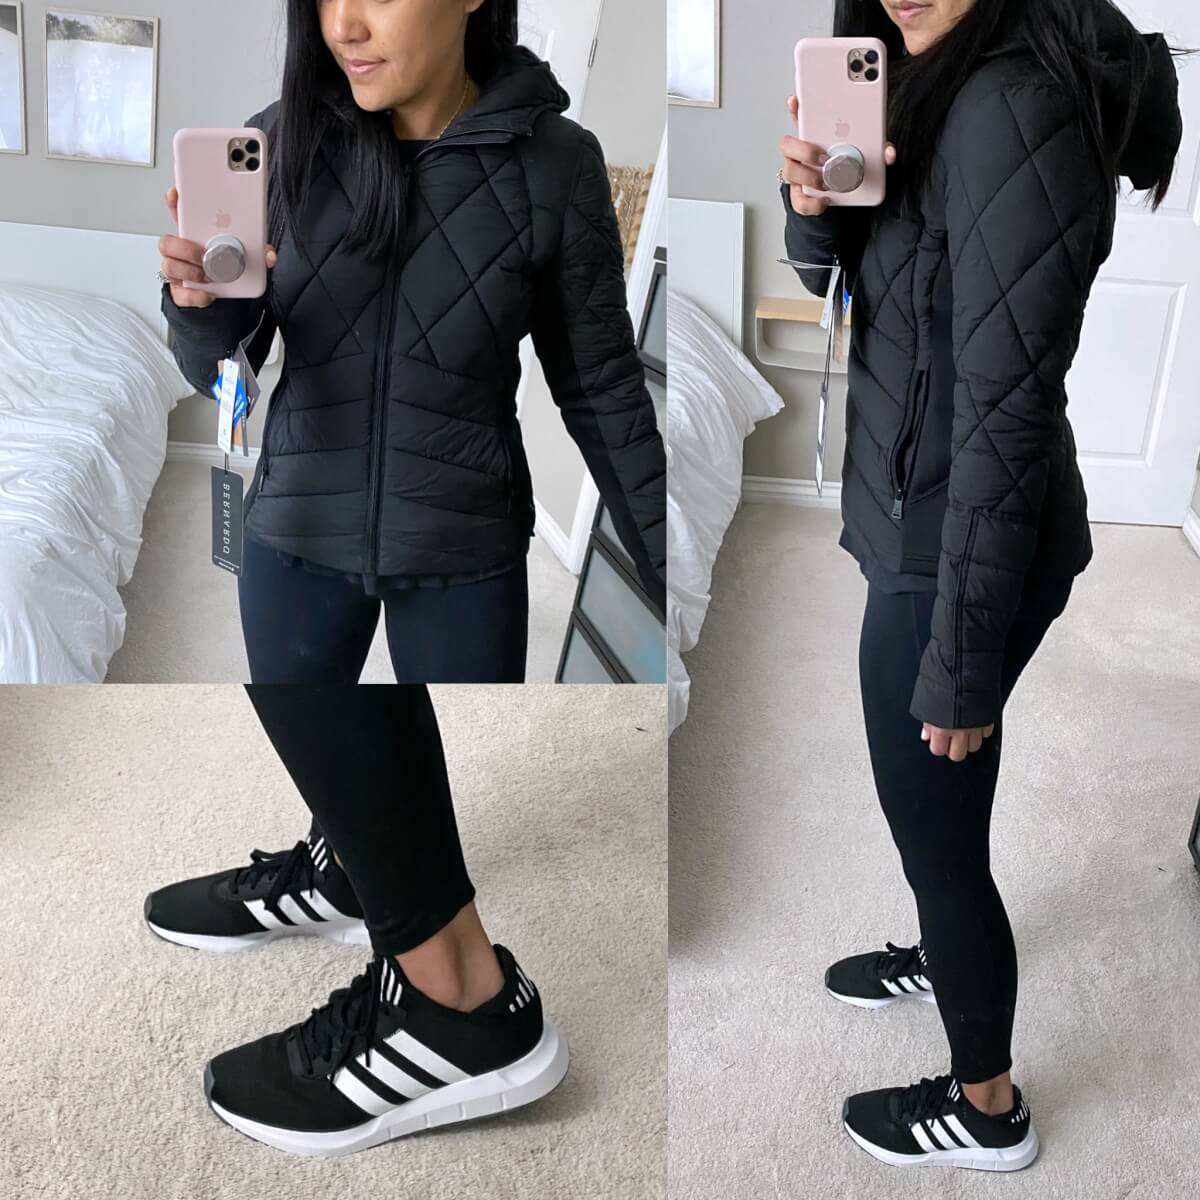 NSale Casual Athleisure Outfit: navy sweatshirt + black leggings + black sneakers + black puffer jacket + gold initial pendant necklace Side and closeup